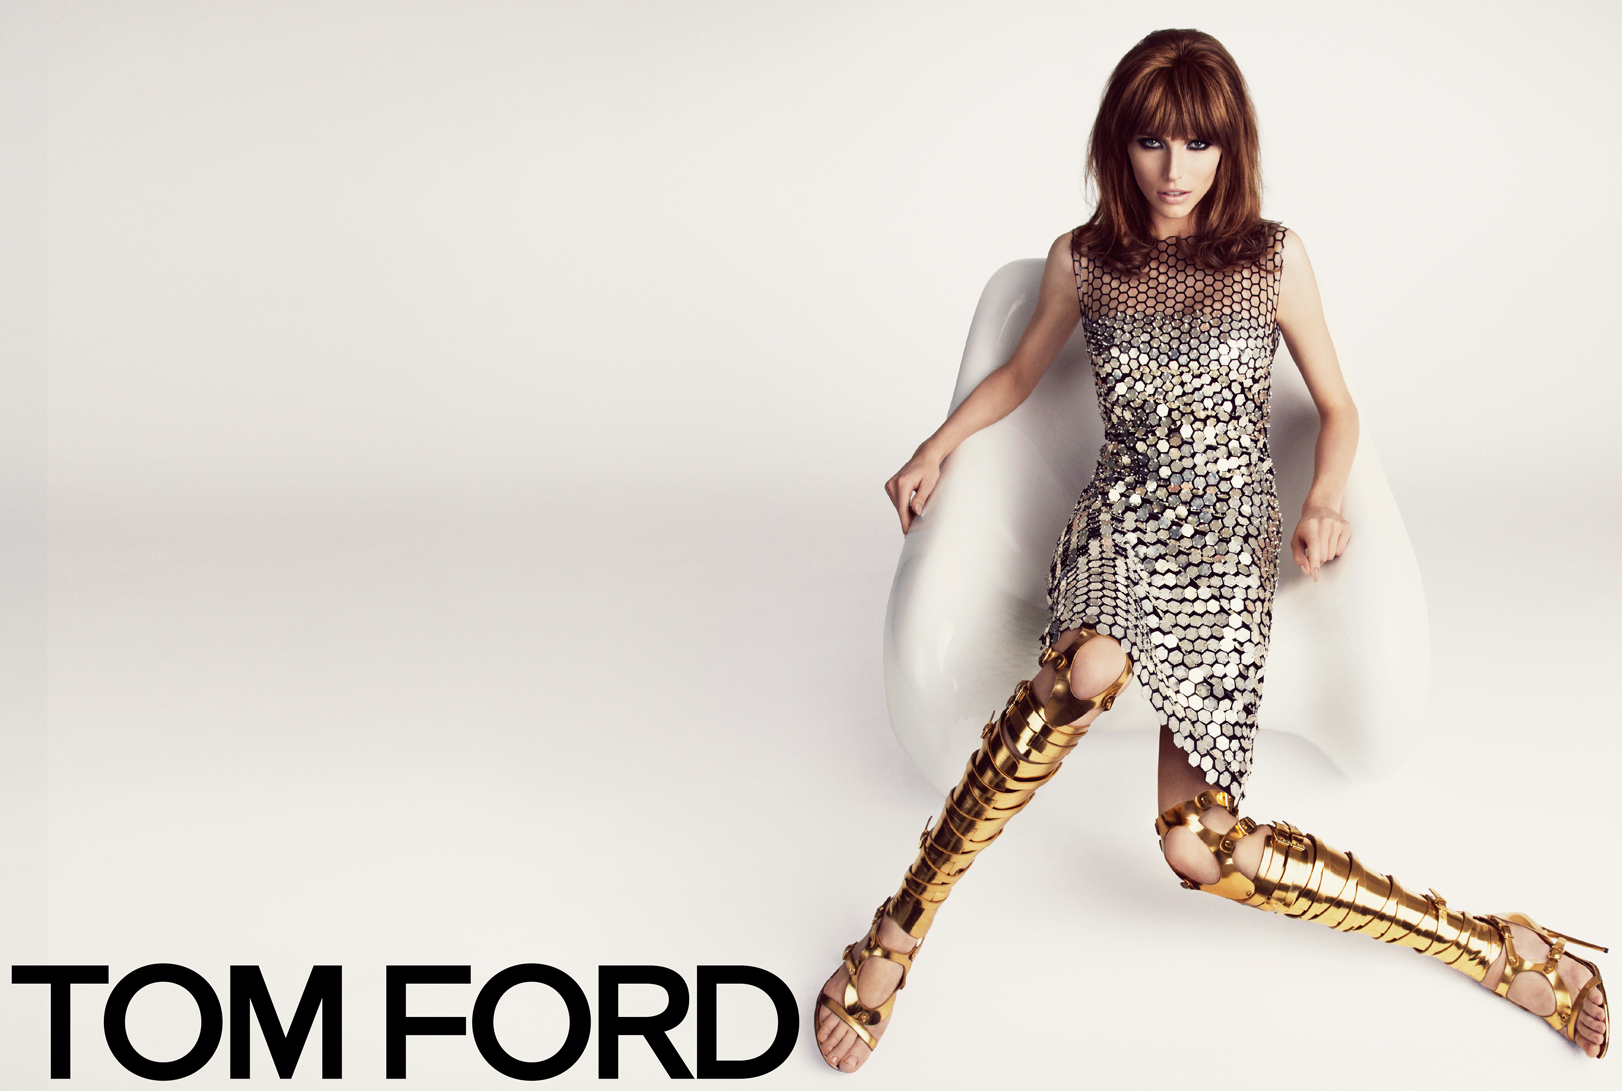 TOM FORD Spring/Summer 2013 Ad Campaign: Karlina Caune and Simon Van Meervenne (Hi Res) W SS13 CAMPAIGN 2